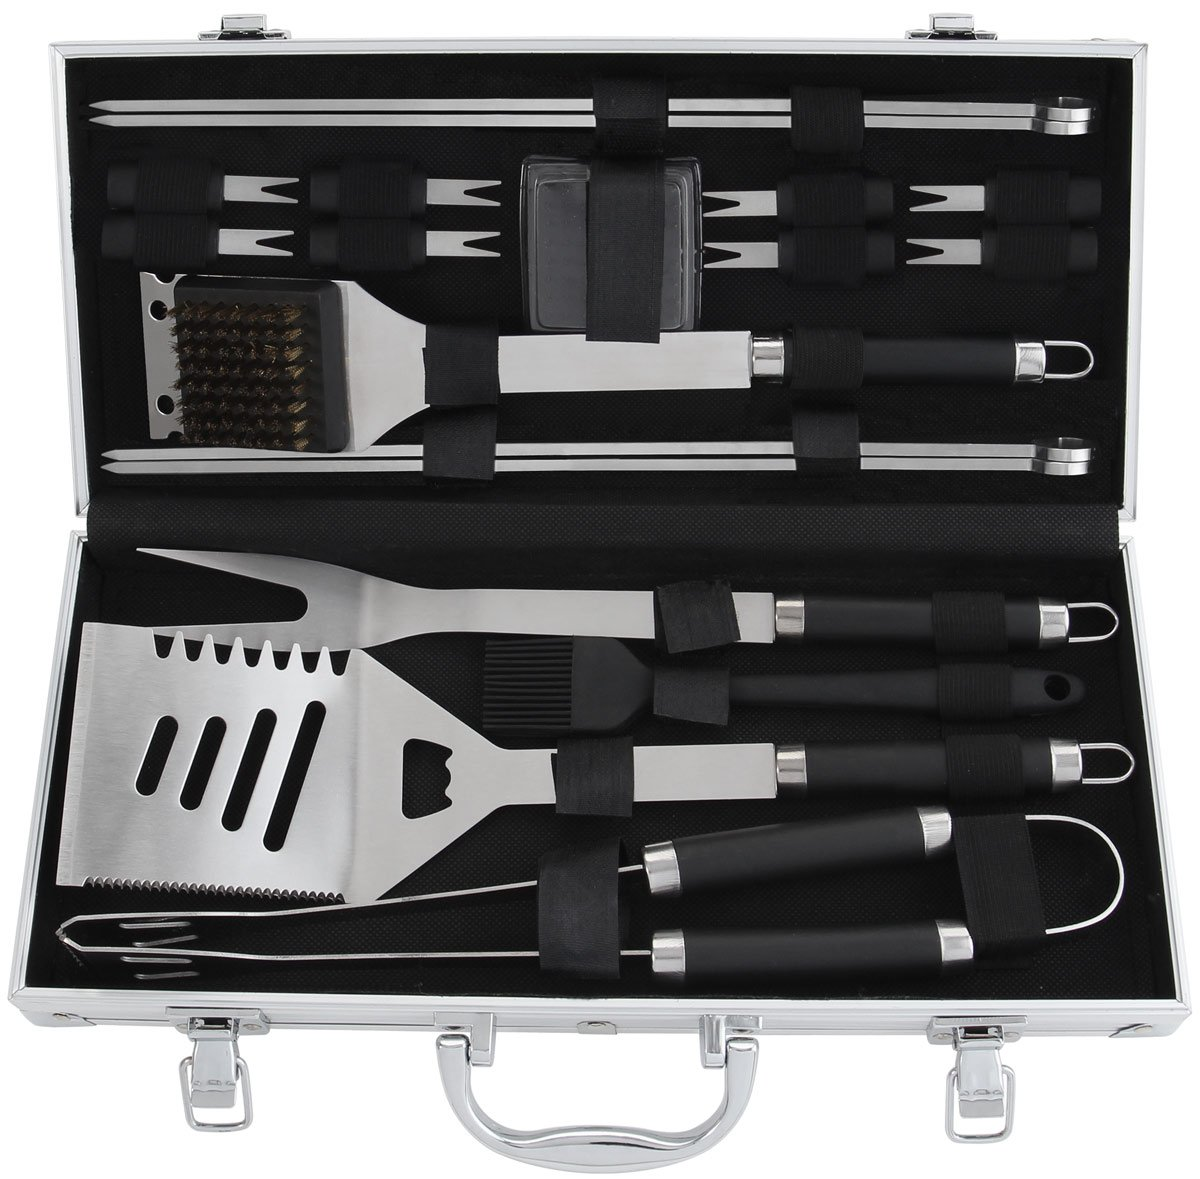 POLIGO 19-Piece BBQ Grill Tools Set - Heavy Duty Stainless Steel Barbecue Grilling Utensils Kit Set With Aluminum Case - Premium Grilling Accessories for Barbecue - Birthday Gift for Men